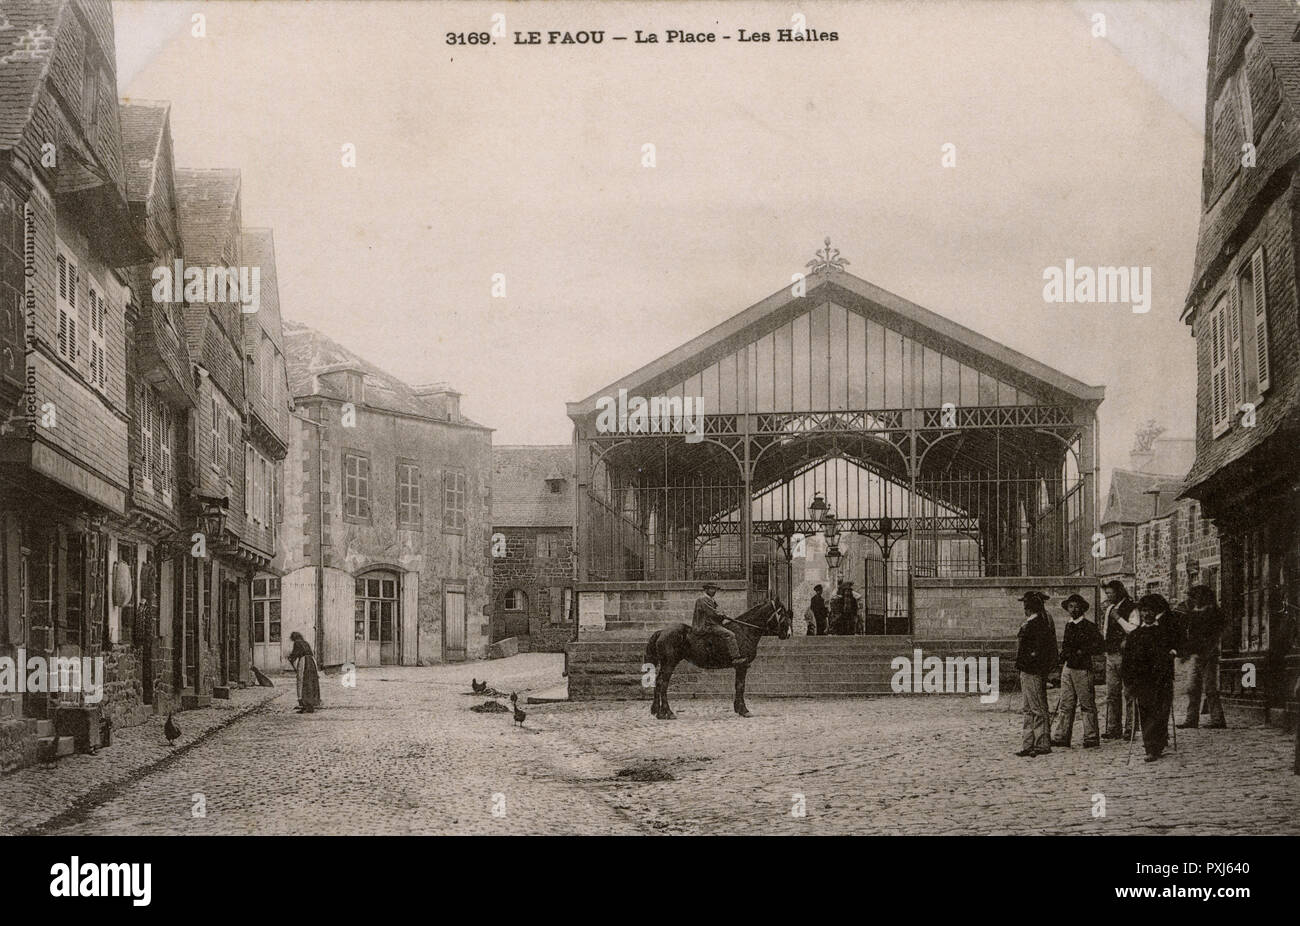 Le Faouet, Brittany, France - La Place - Les Halles (Covered Market) - sadly no longer standing (although the rest of the buildings are unchanged to this day).     Date: circa 1902 - Stock Image